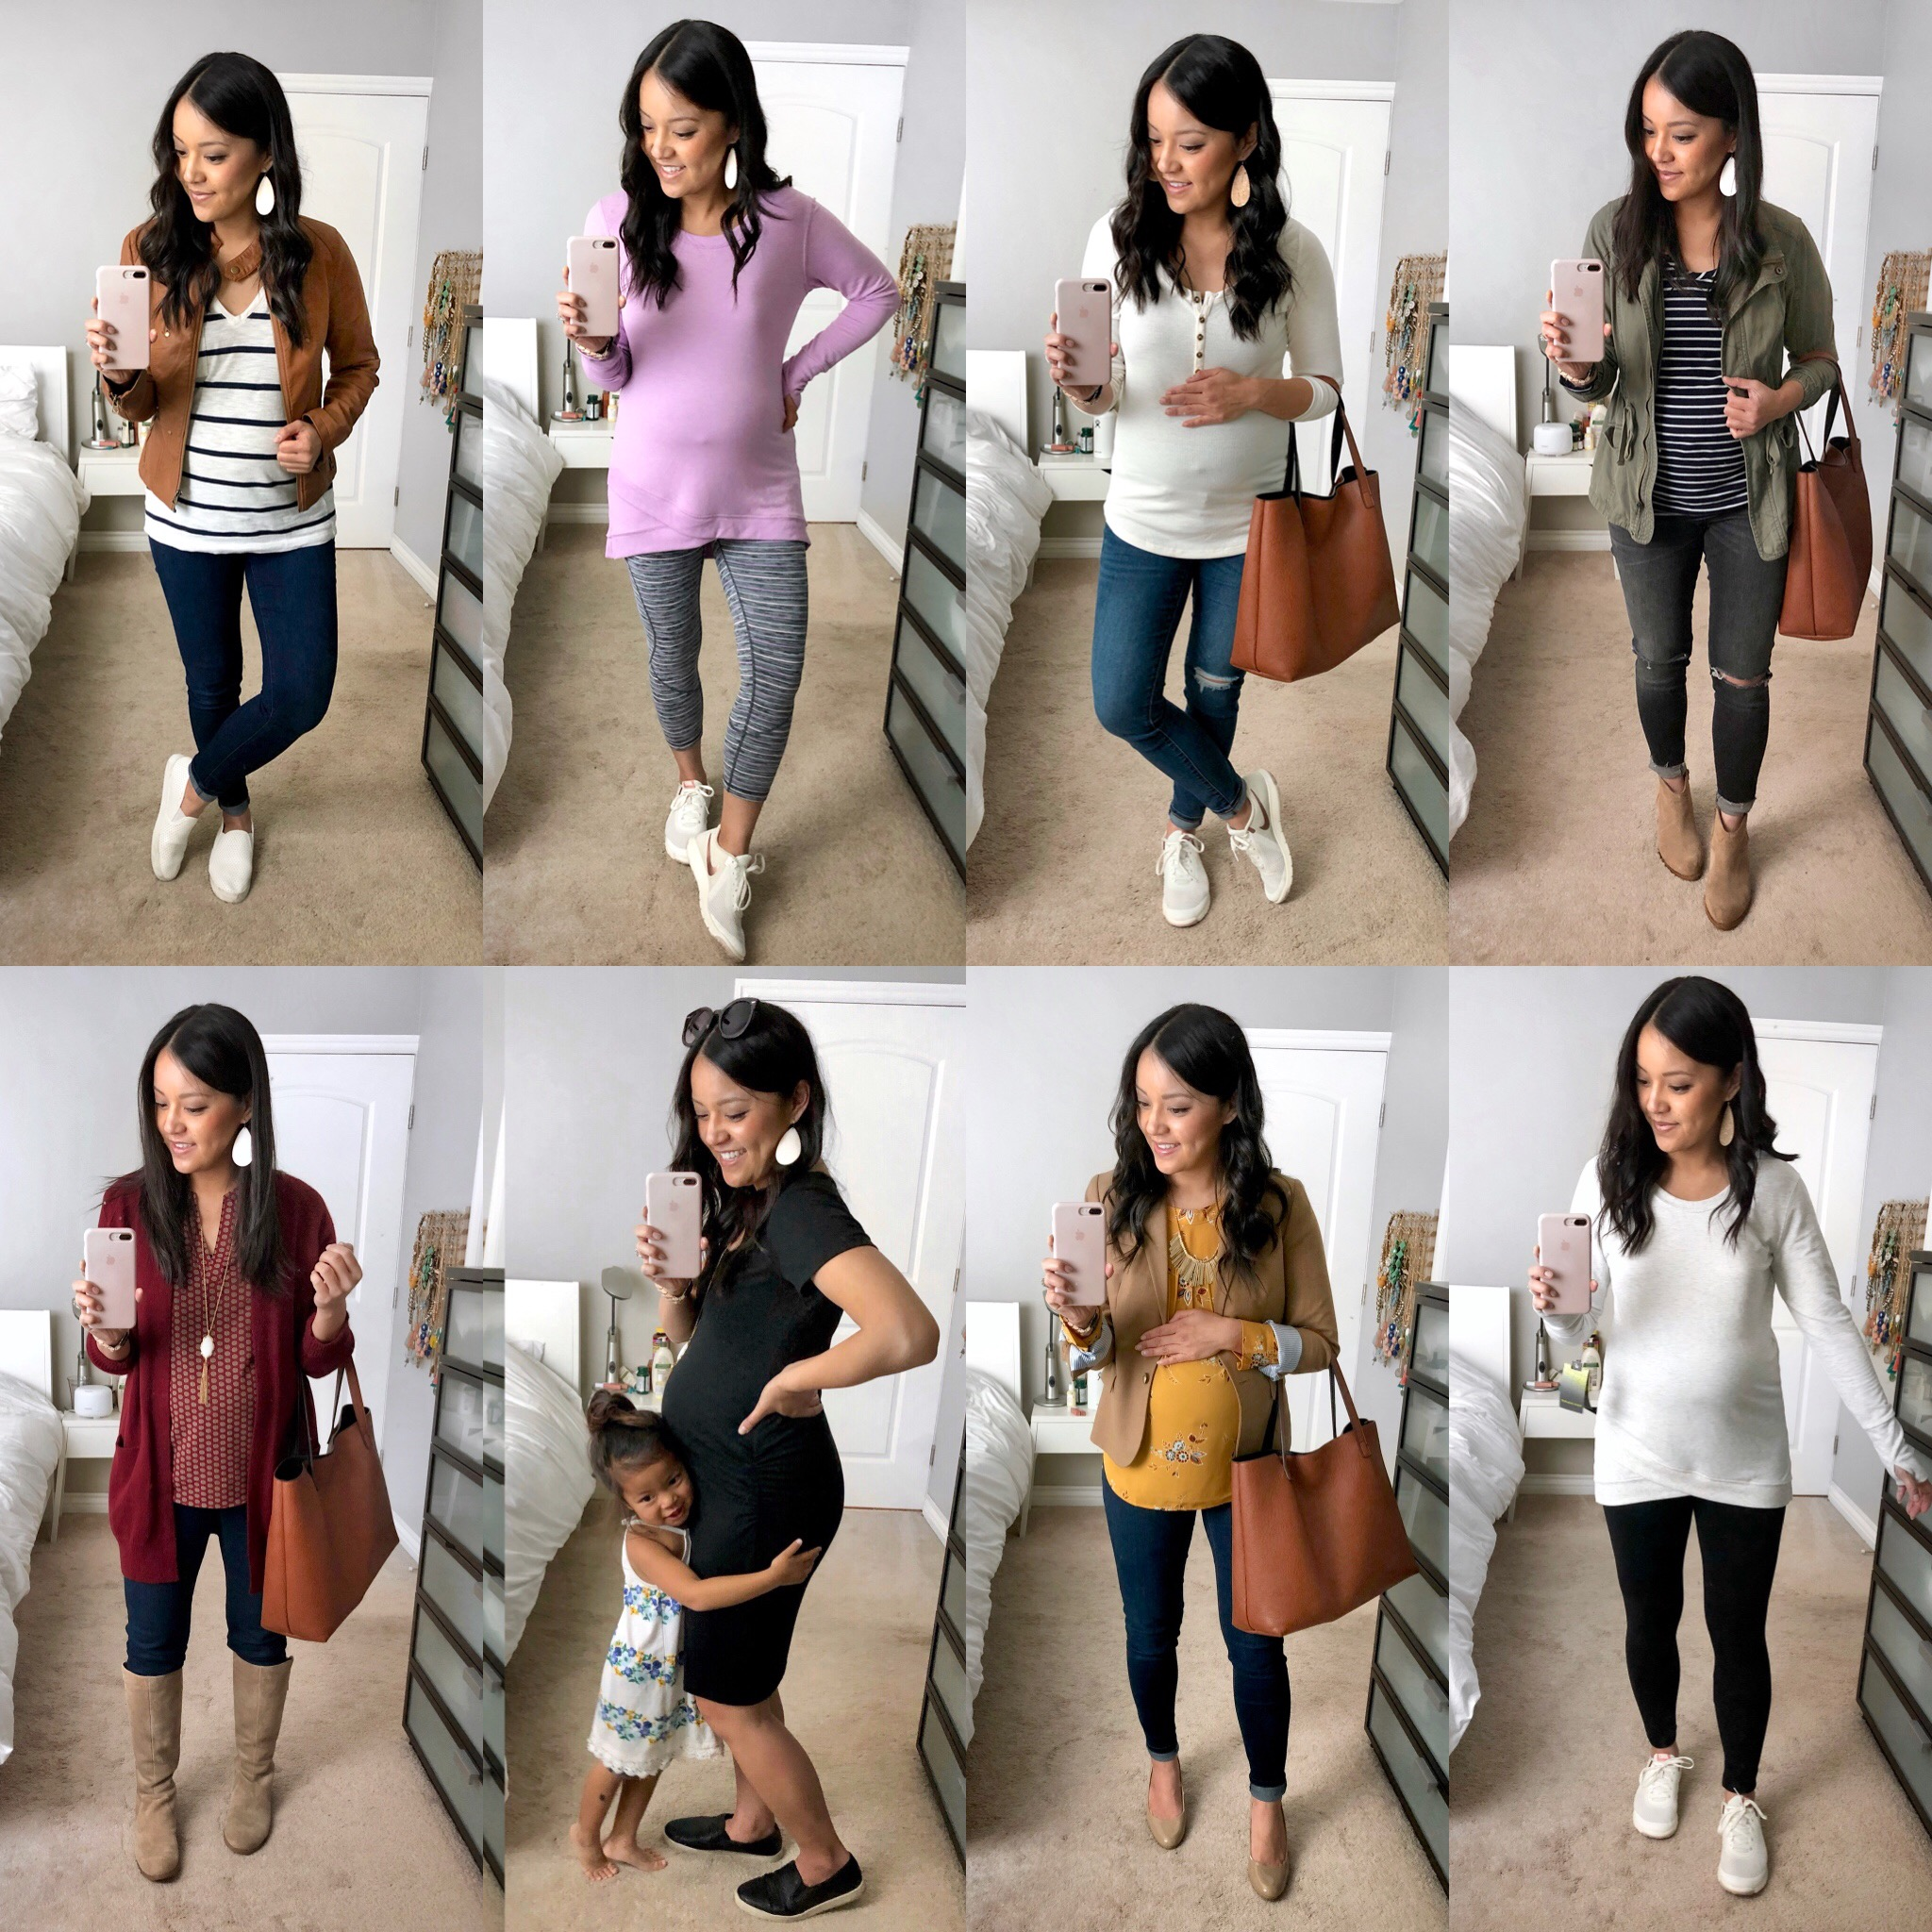 400d1d583a5f Instagram Daily Outfits of the Day #33 - Transitional Spring and ...